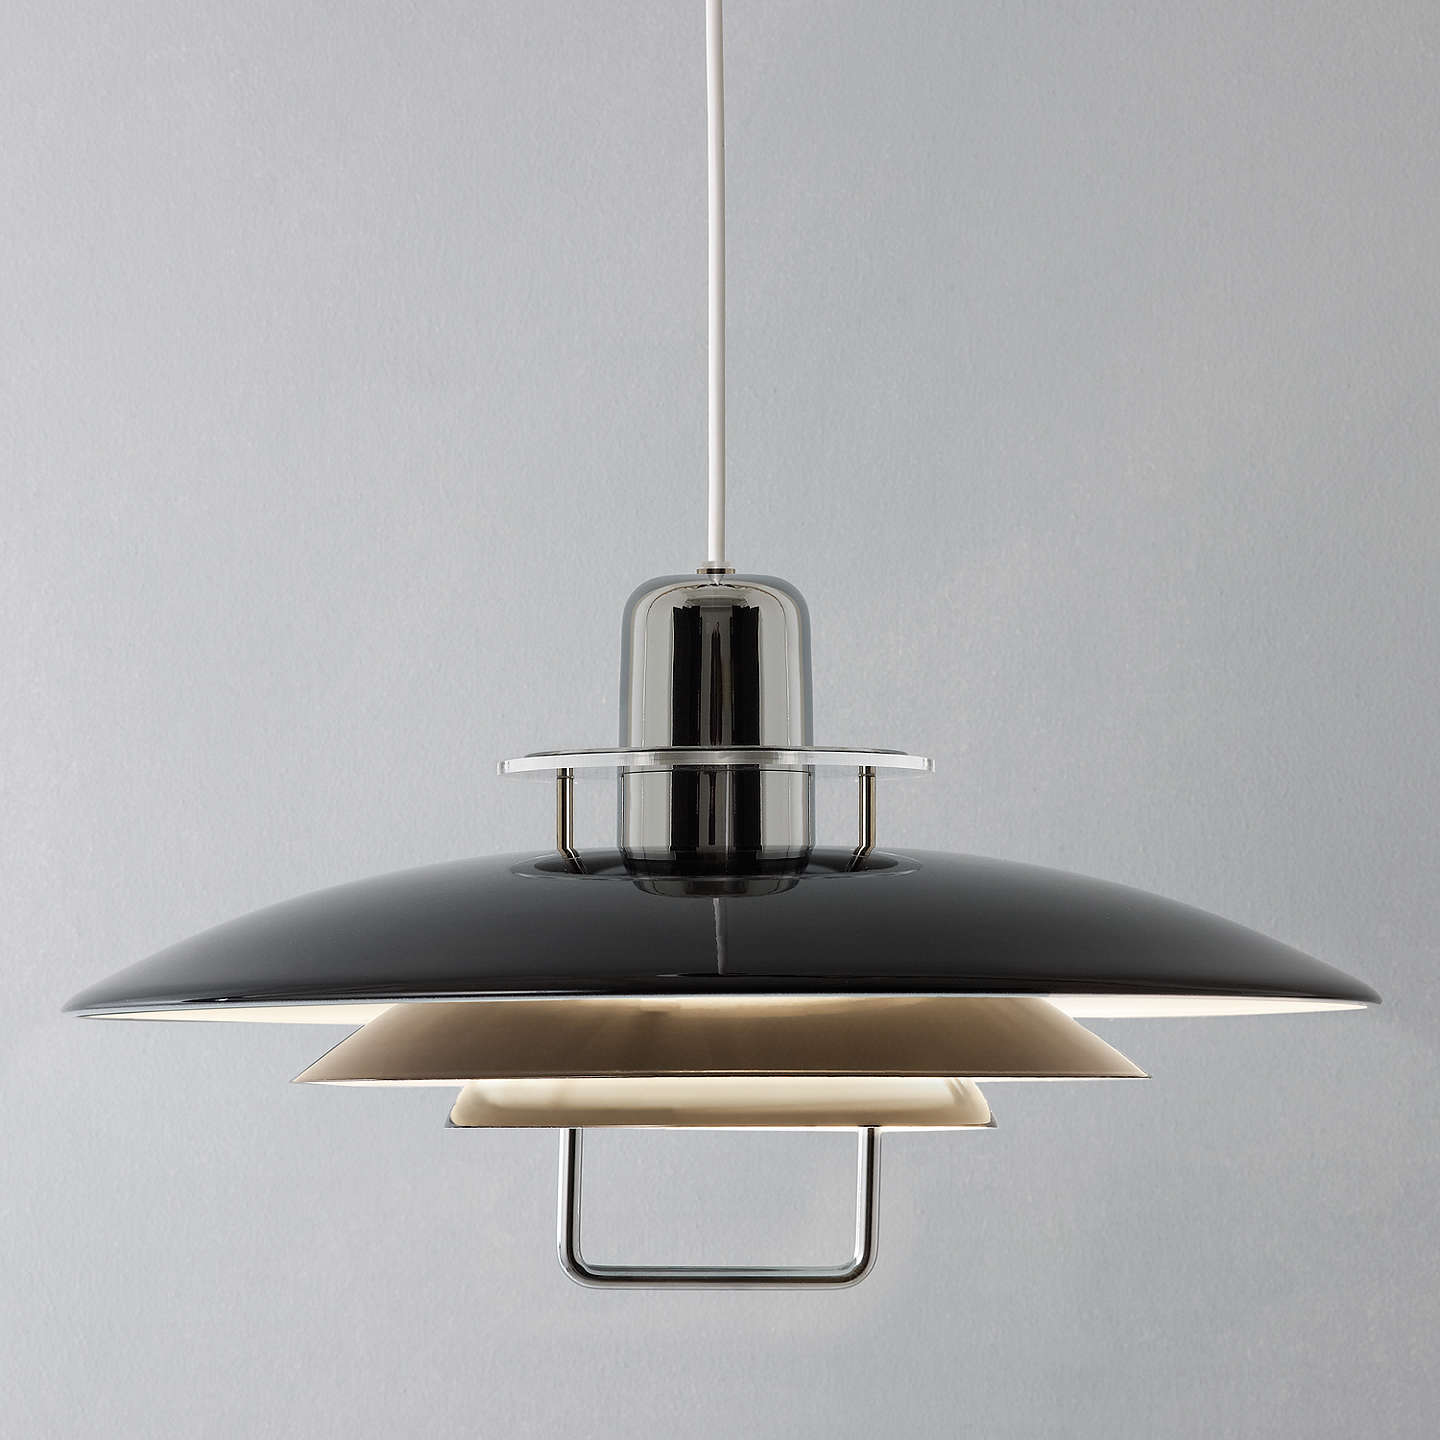 Industrial Rise And Fall Pendant Light: Belid Felix Rise And Fall Ceiling Light At John Lewis